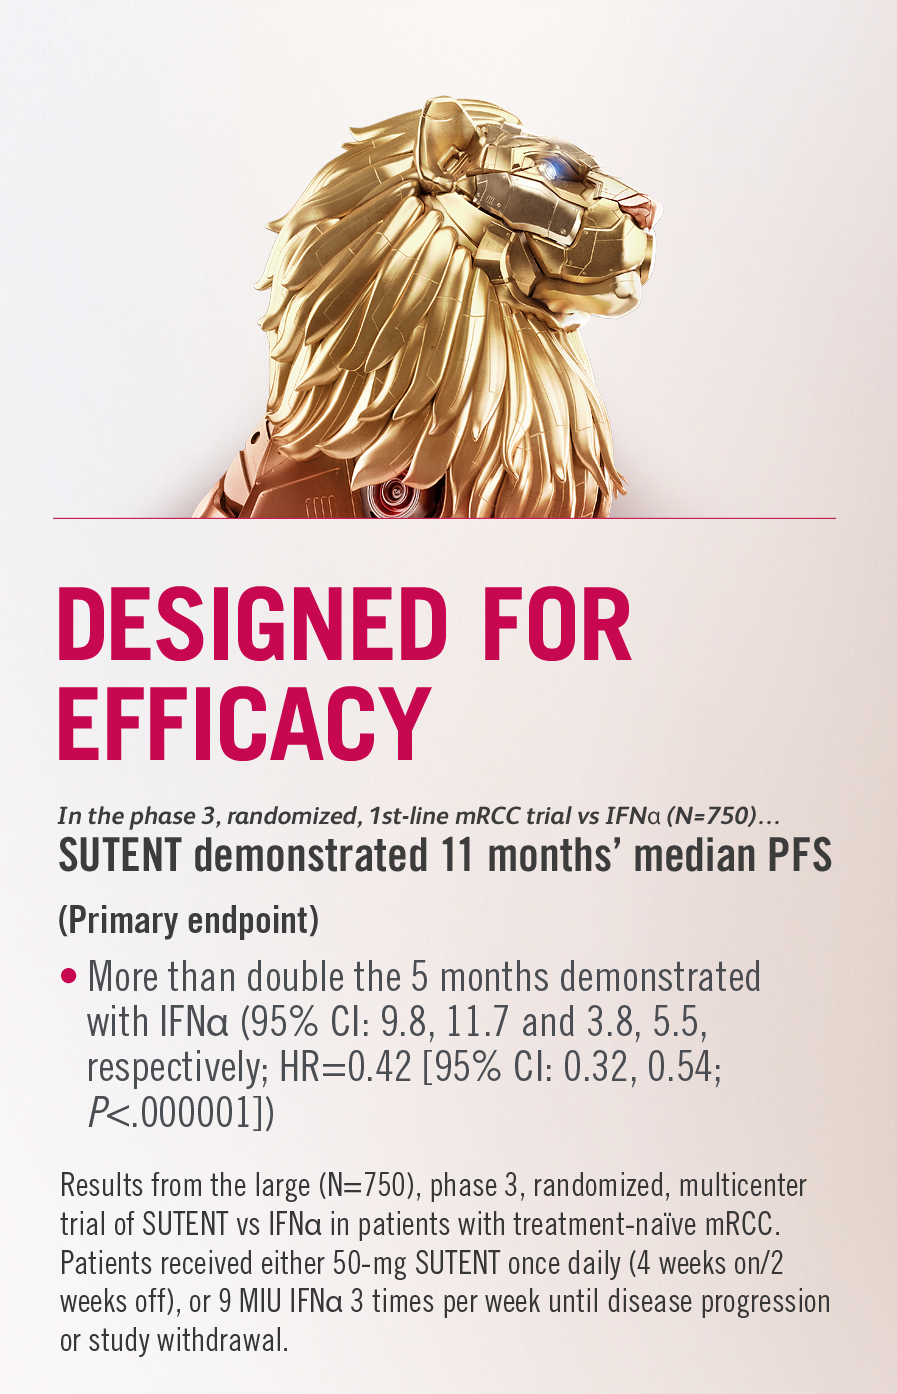 Efficacy Leaping Lion